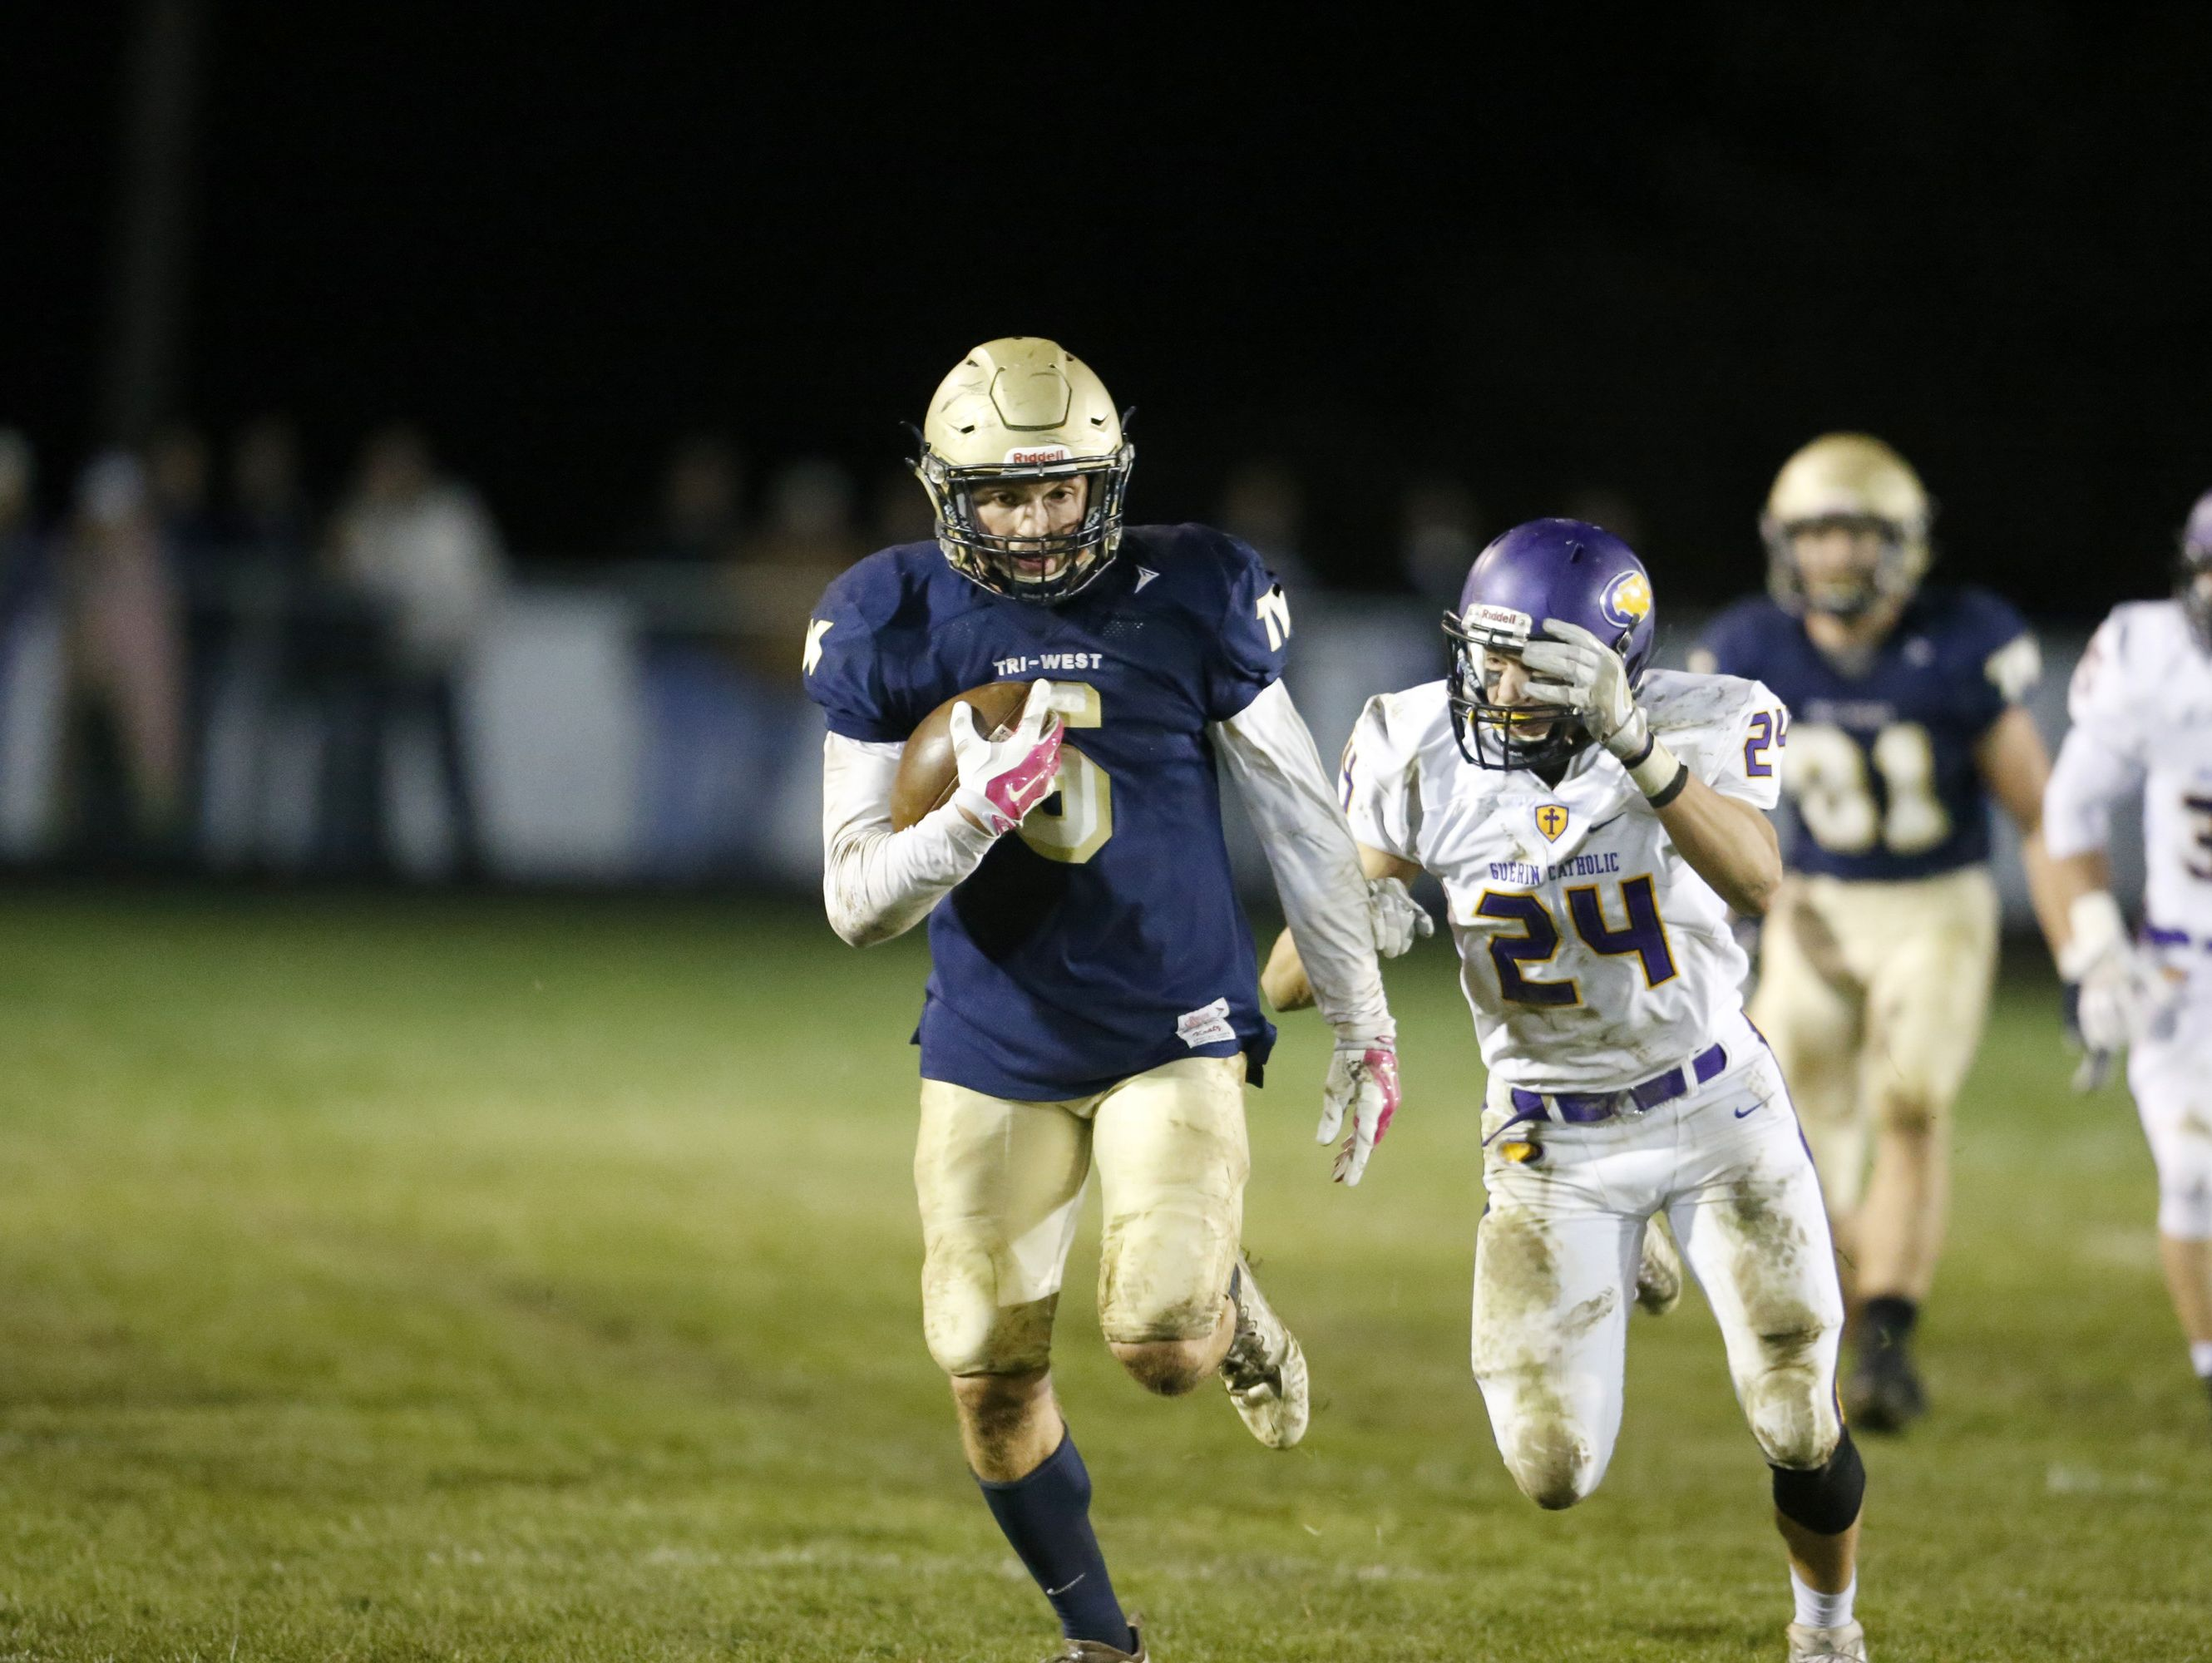 Tri-West tight end Peyton Hendershot is still committed to IU, but looking around.